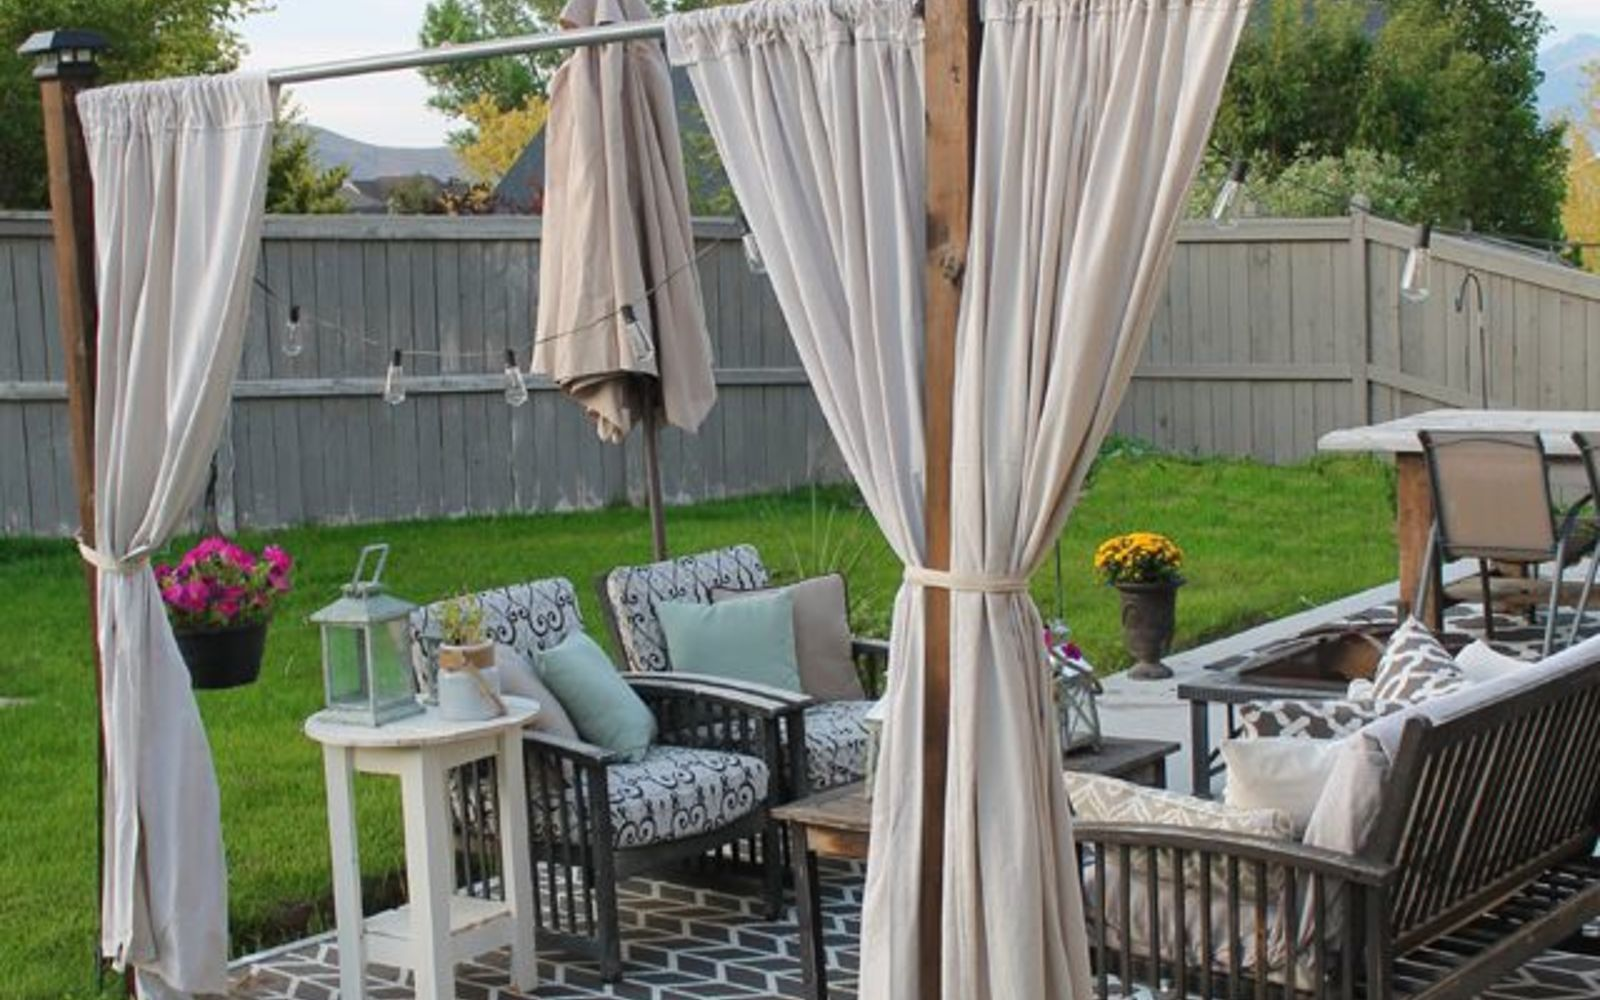 s wait they did what in their backyard , outdoor furniture, outdoor living, Make a shady private spot with drop cloth